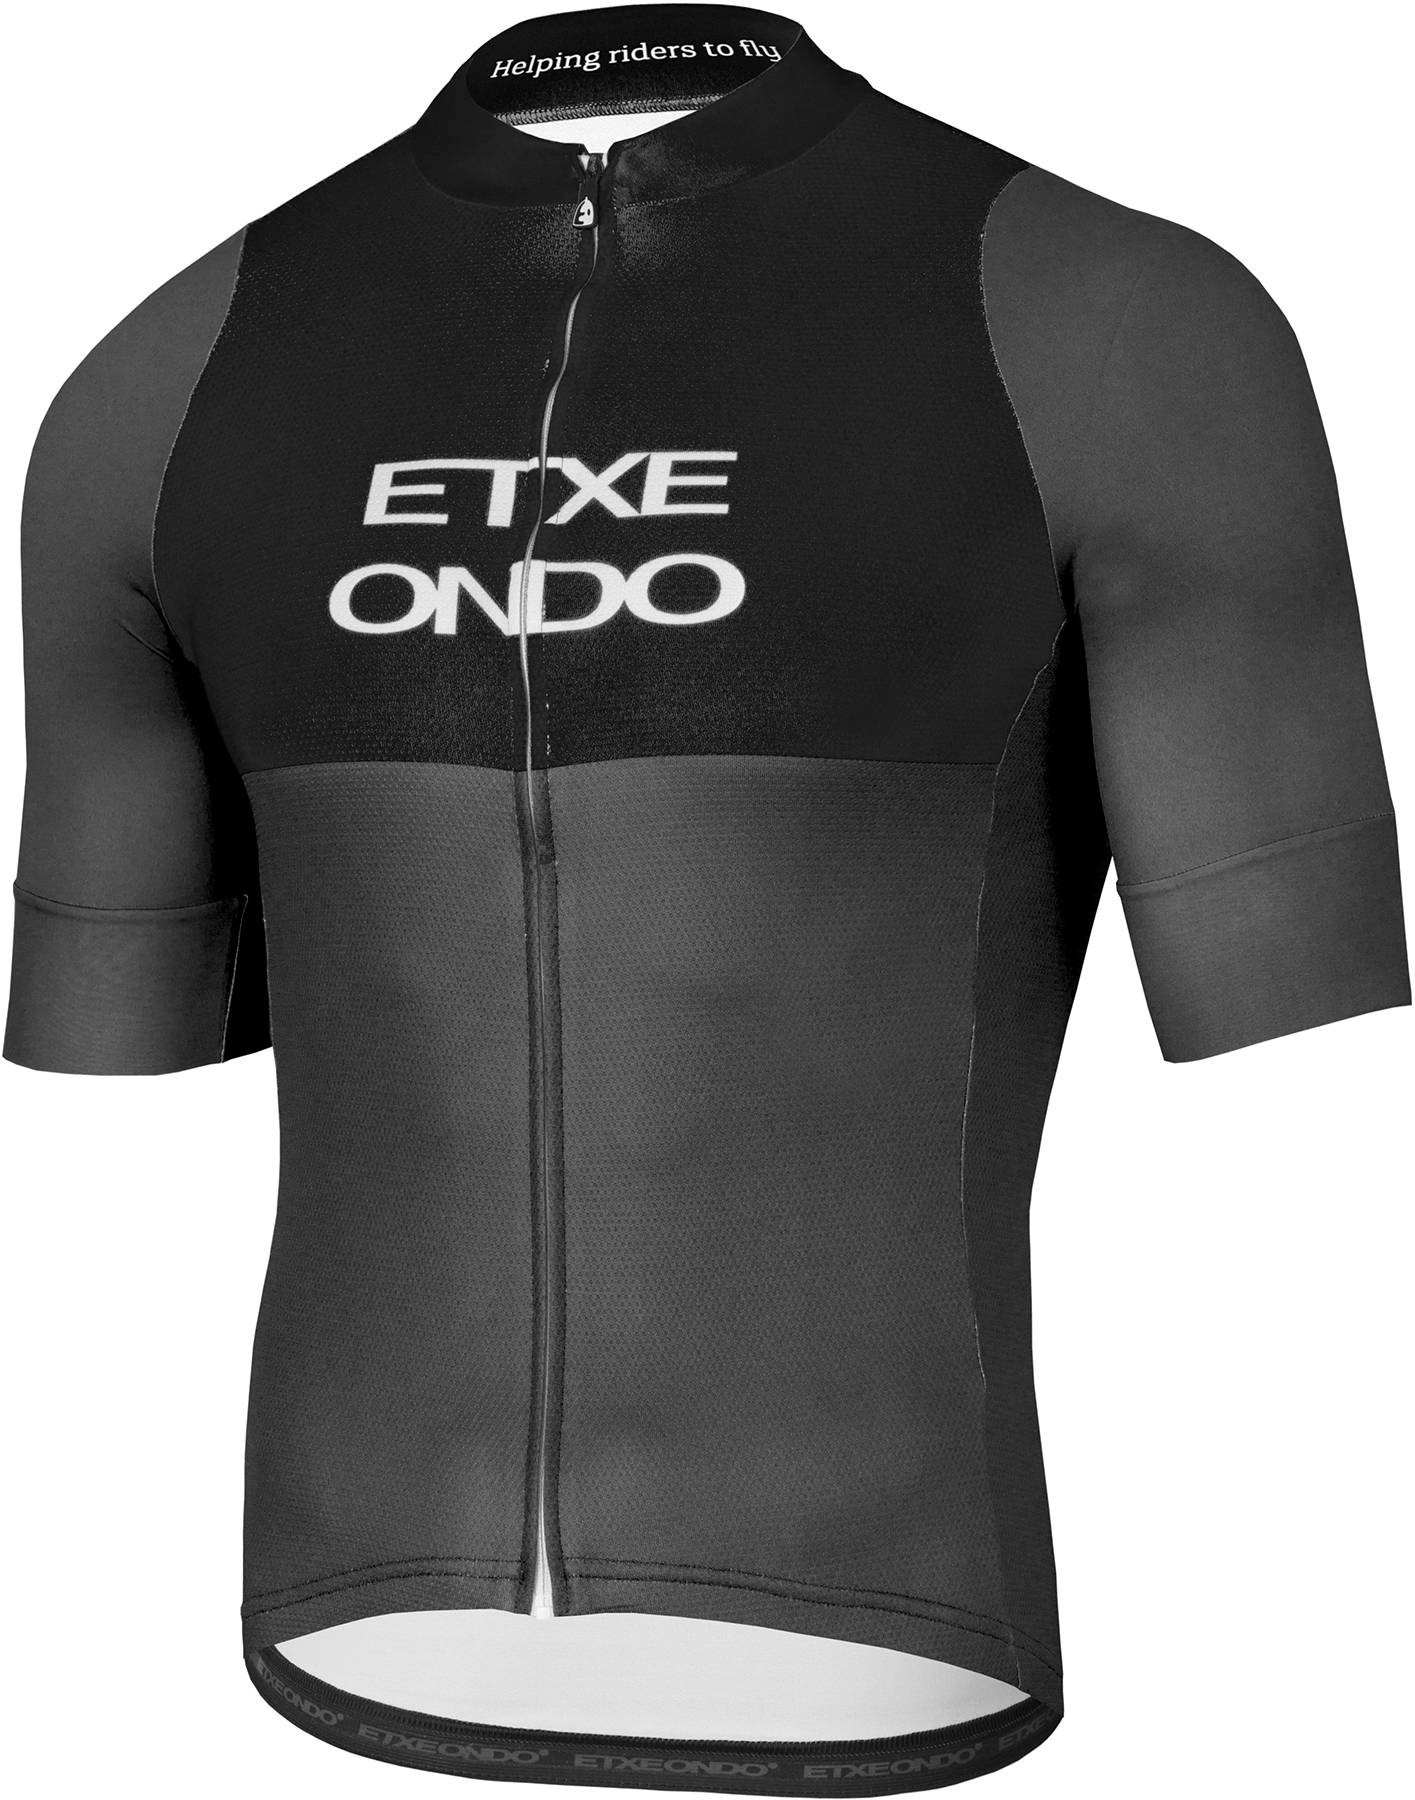 Etxeondo On Training Jersey | Jerseys